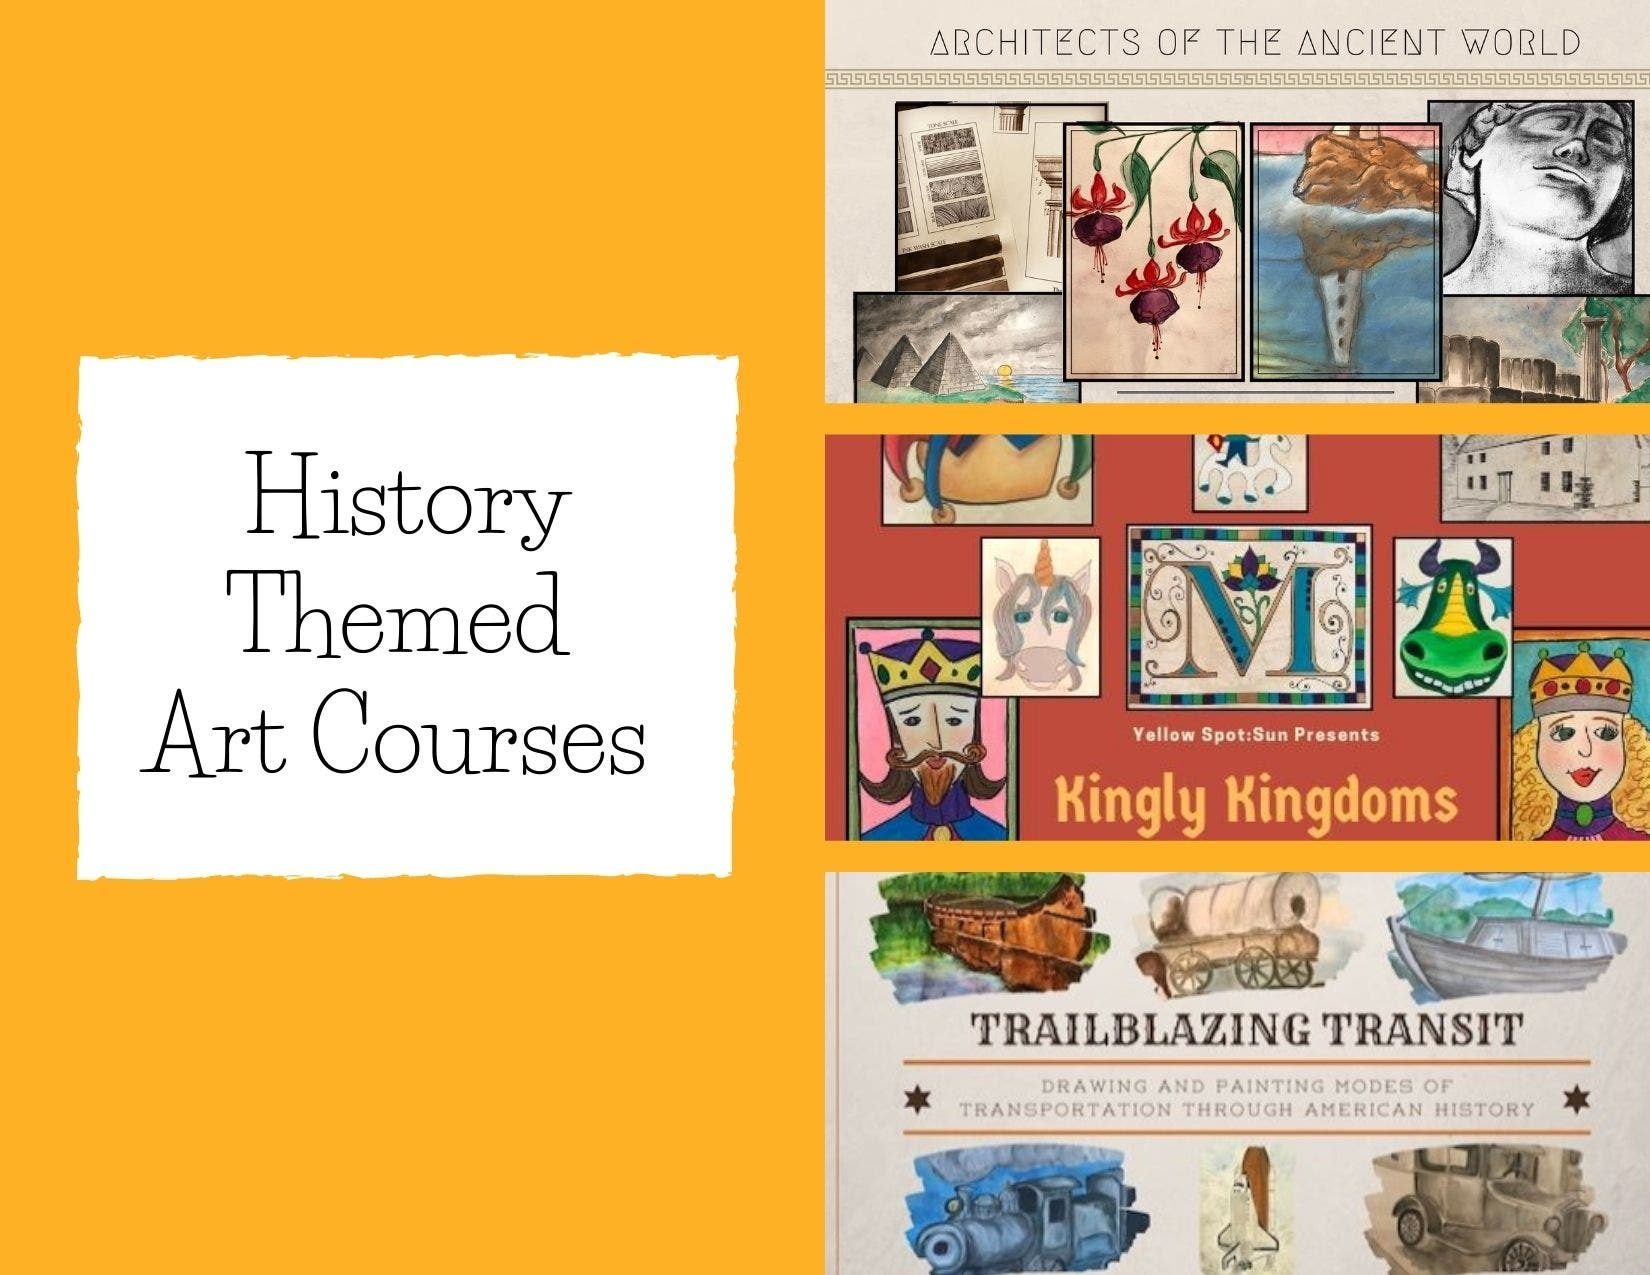 History Themed Art Courses